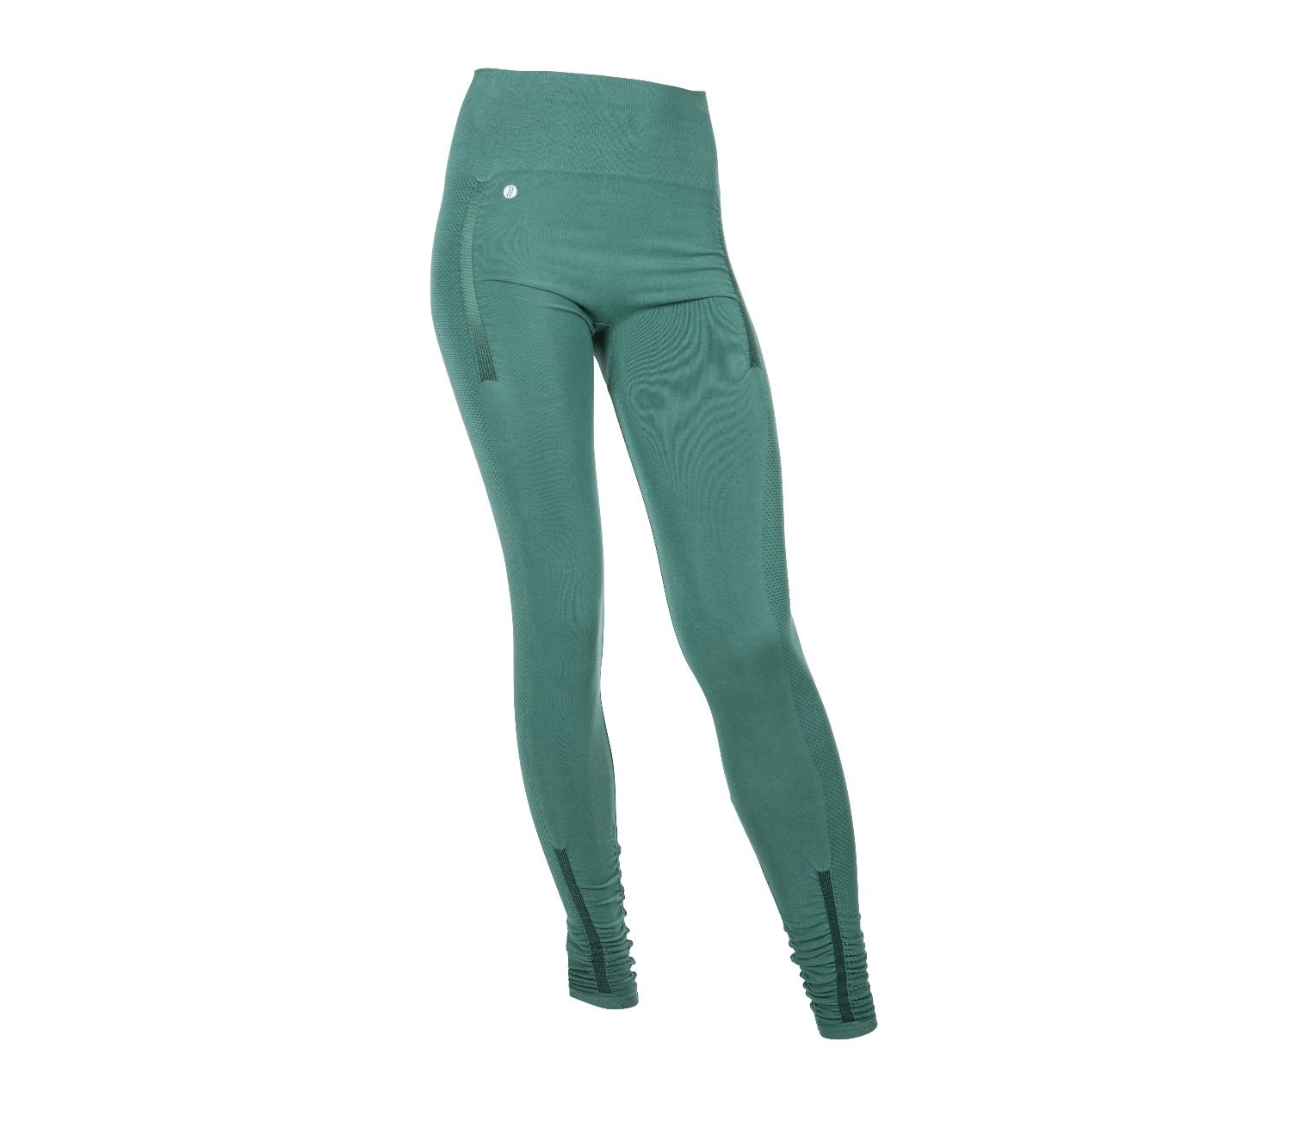 Run and Relax Yoga Tights - Muted Green-M thumbnail